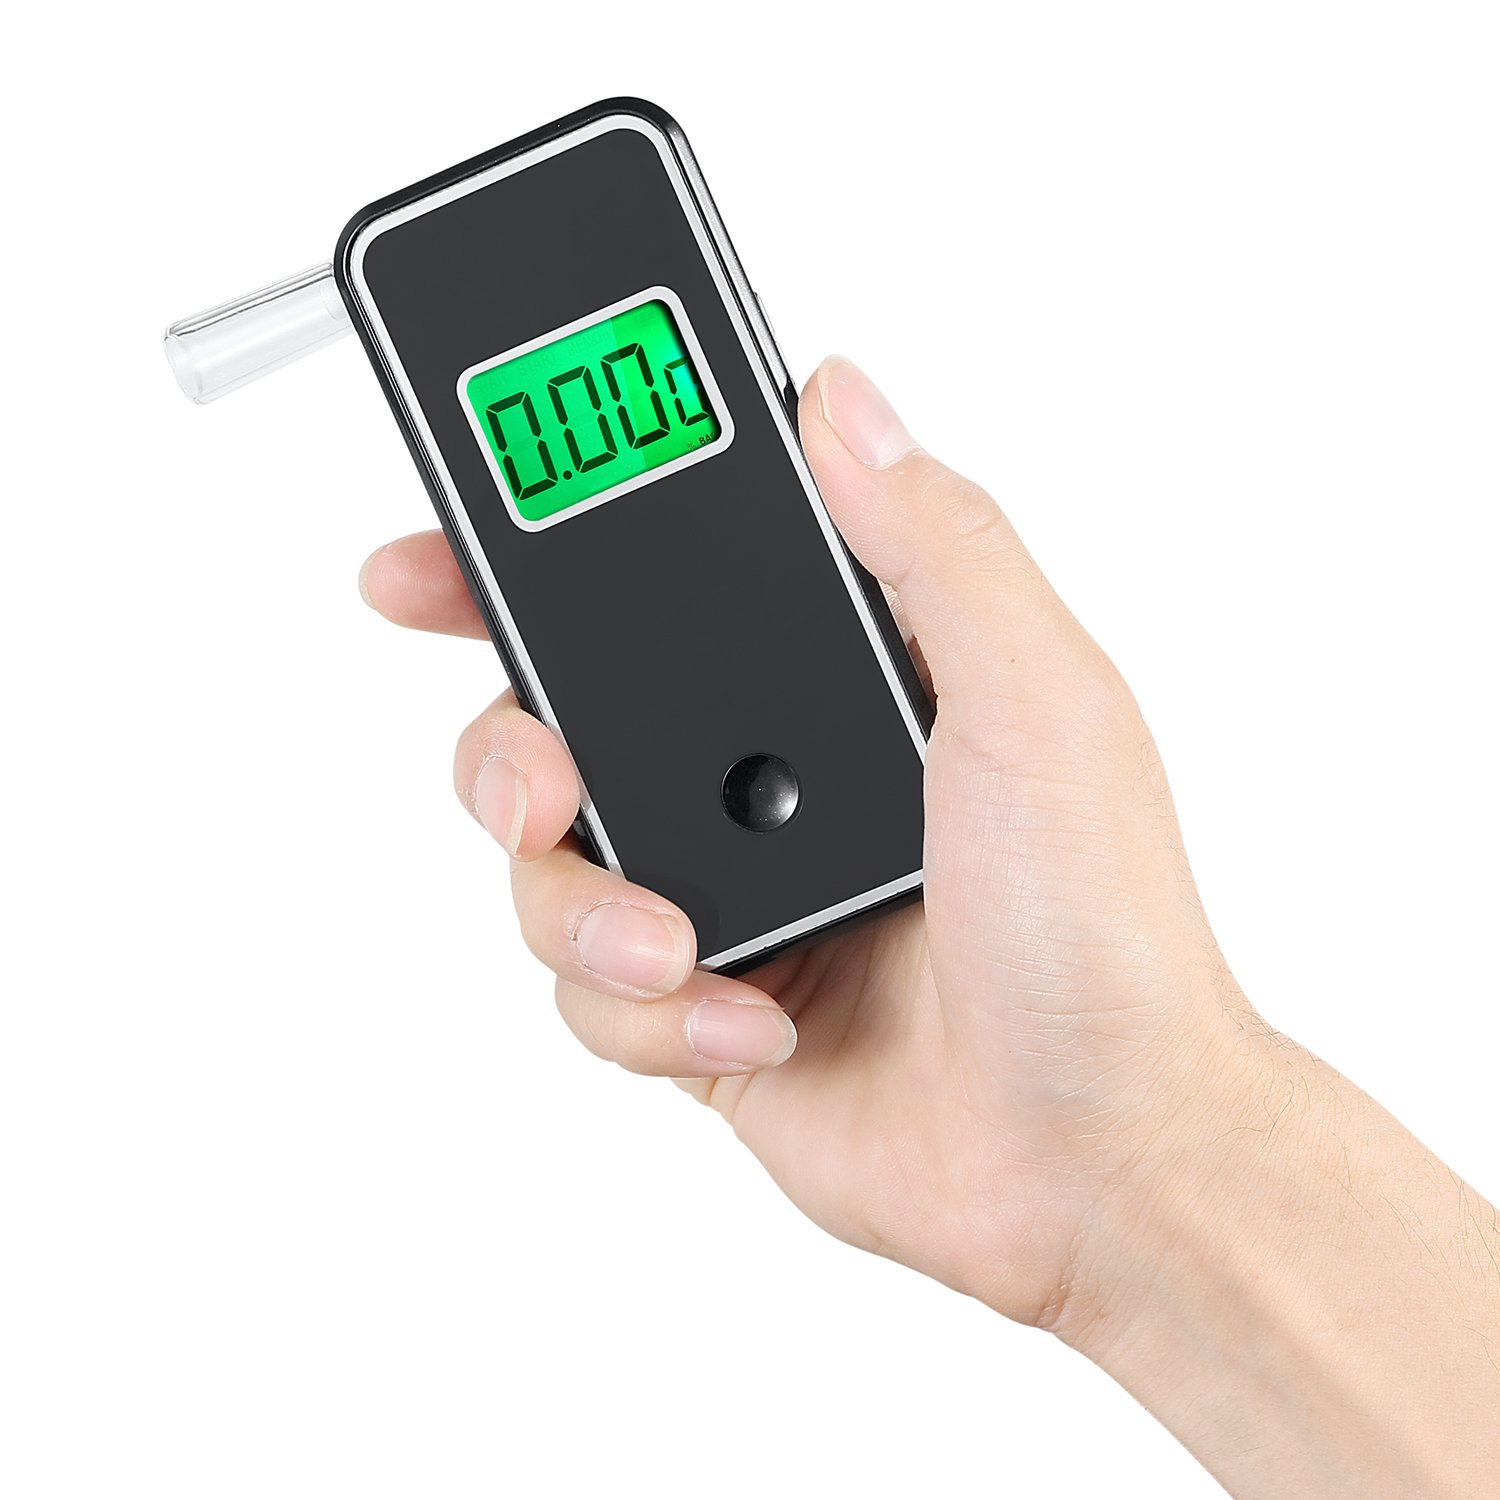 Breathalyzer Anntoo Professional Grade Portable Digital Alcohol Tester with 5 Mouthpieces for Personal Use - Gray by Anntoo (Image #4)